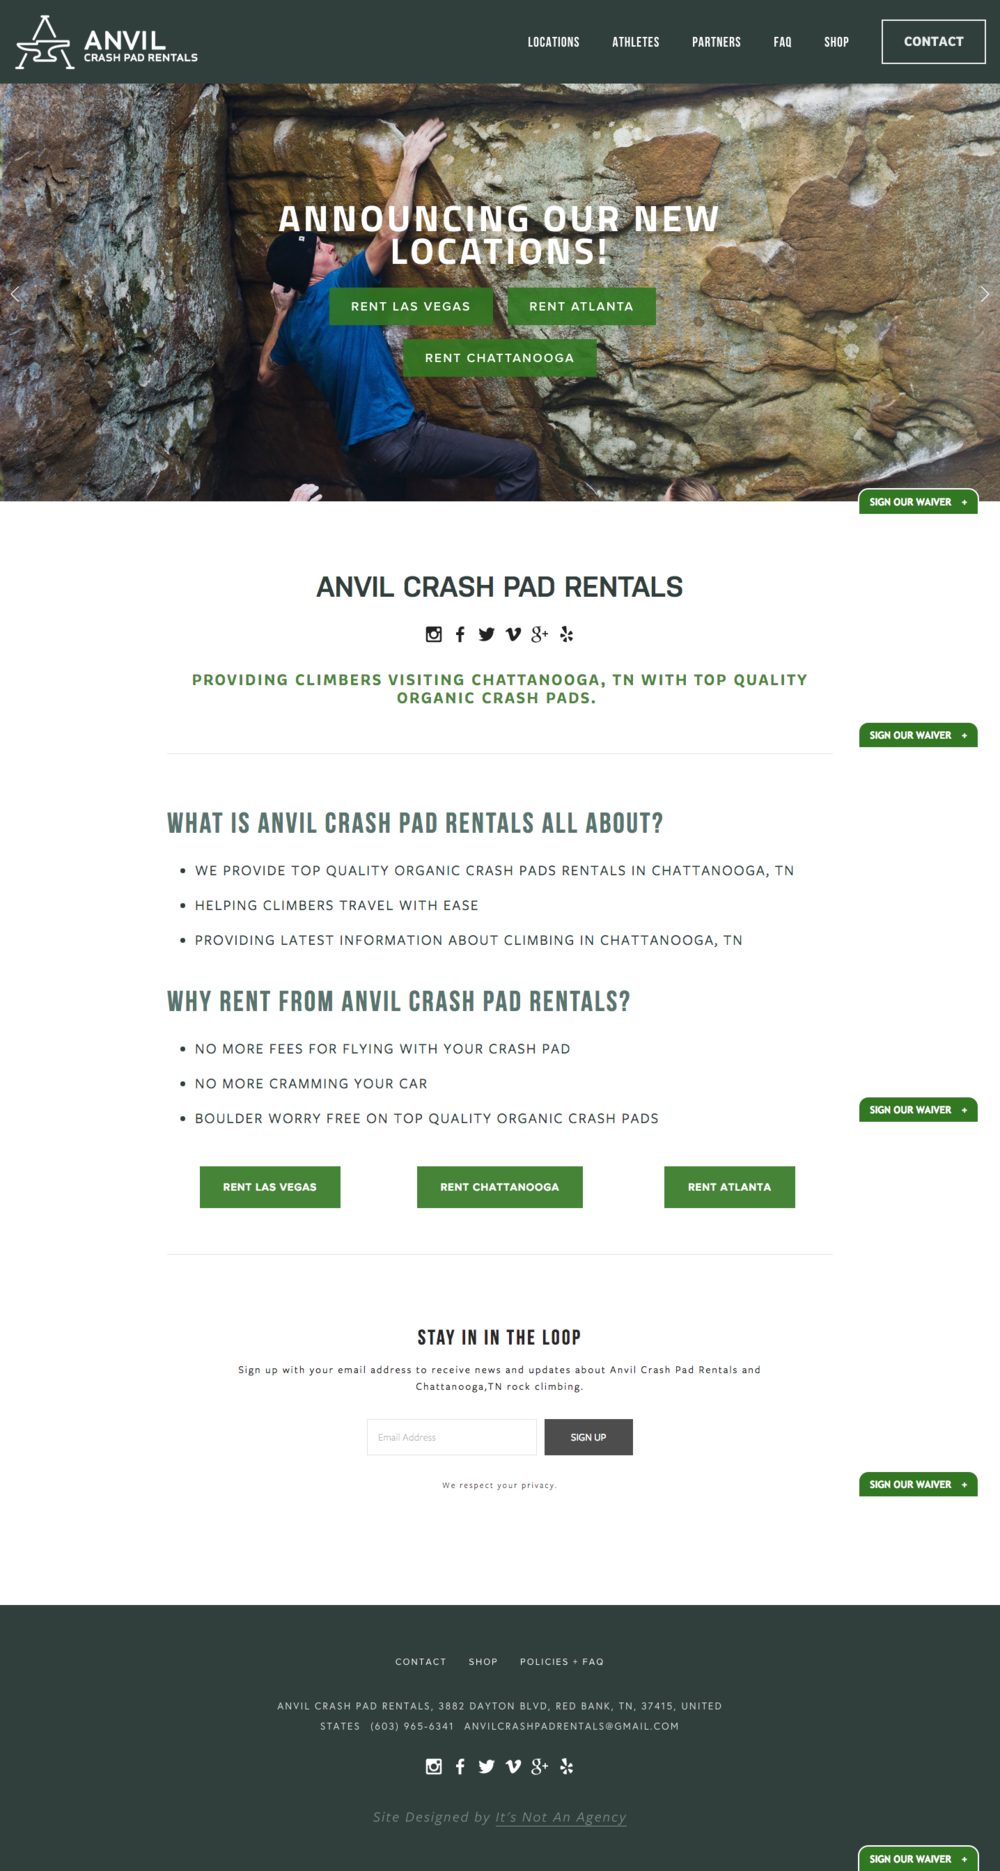 Ecommerce Website Design_Anvil Crash Pad Rentals1.png